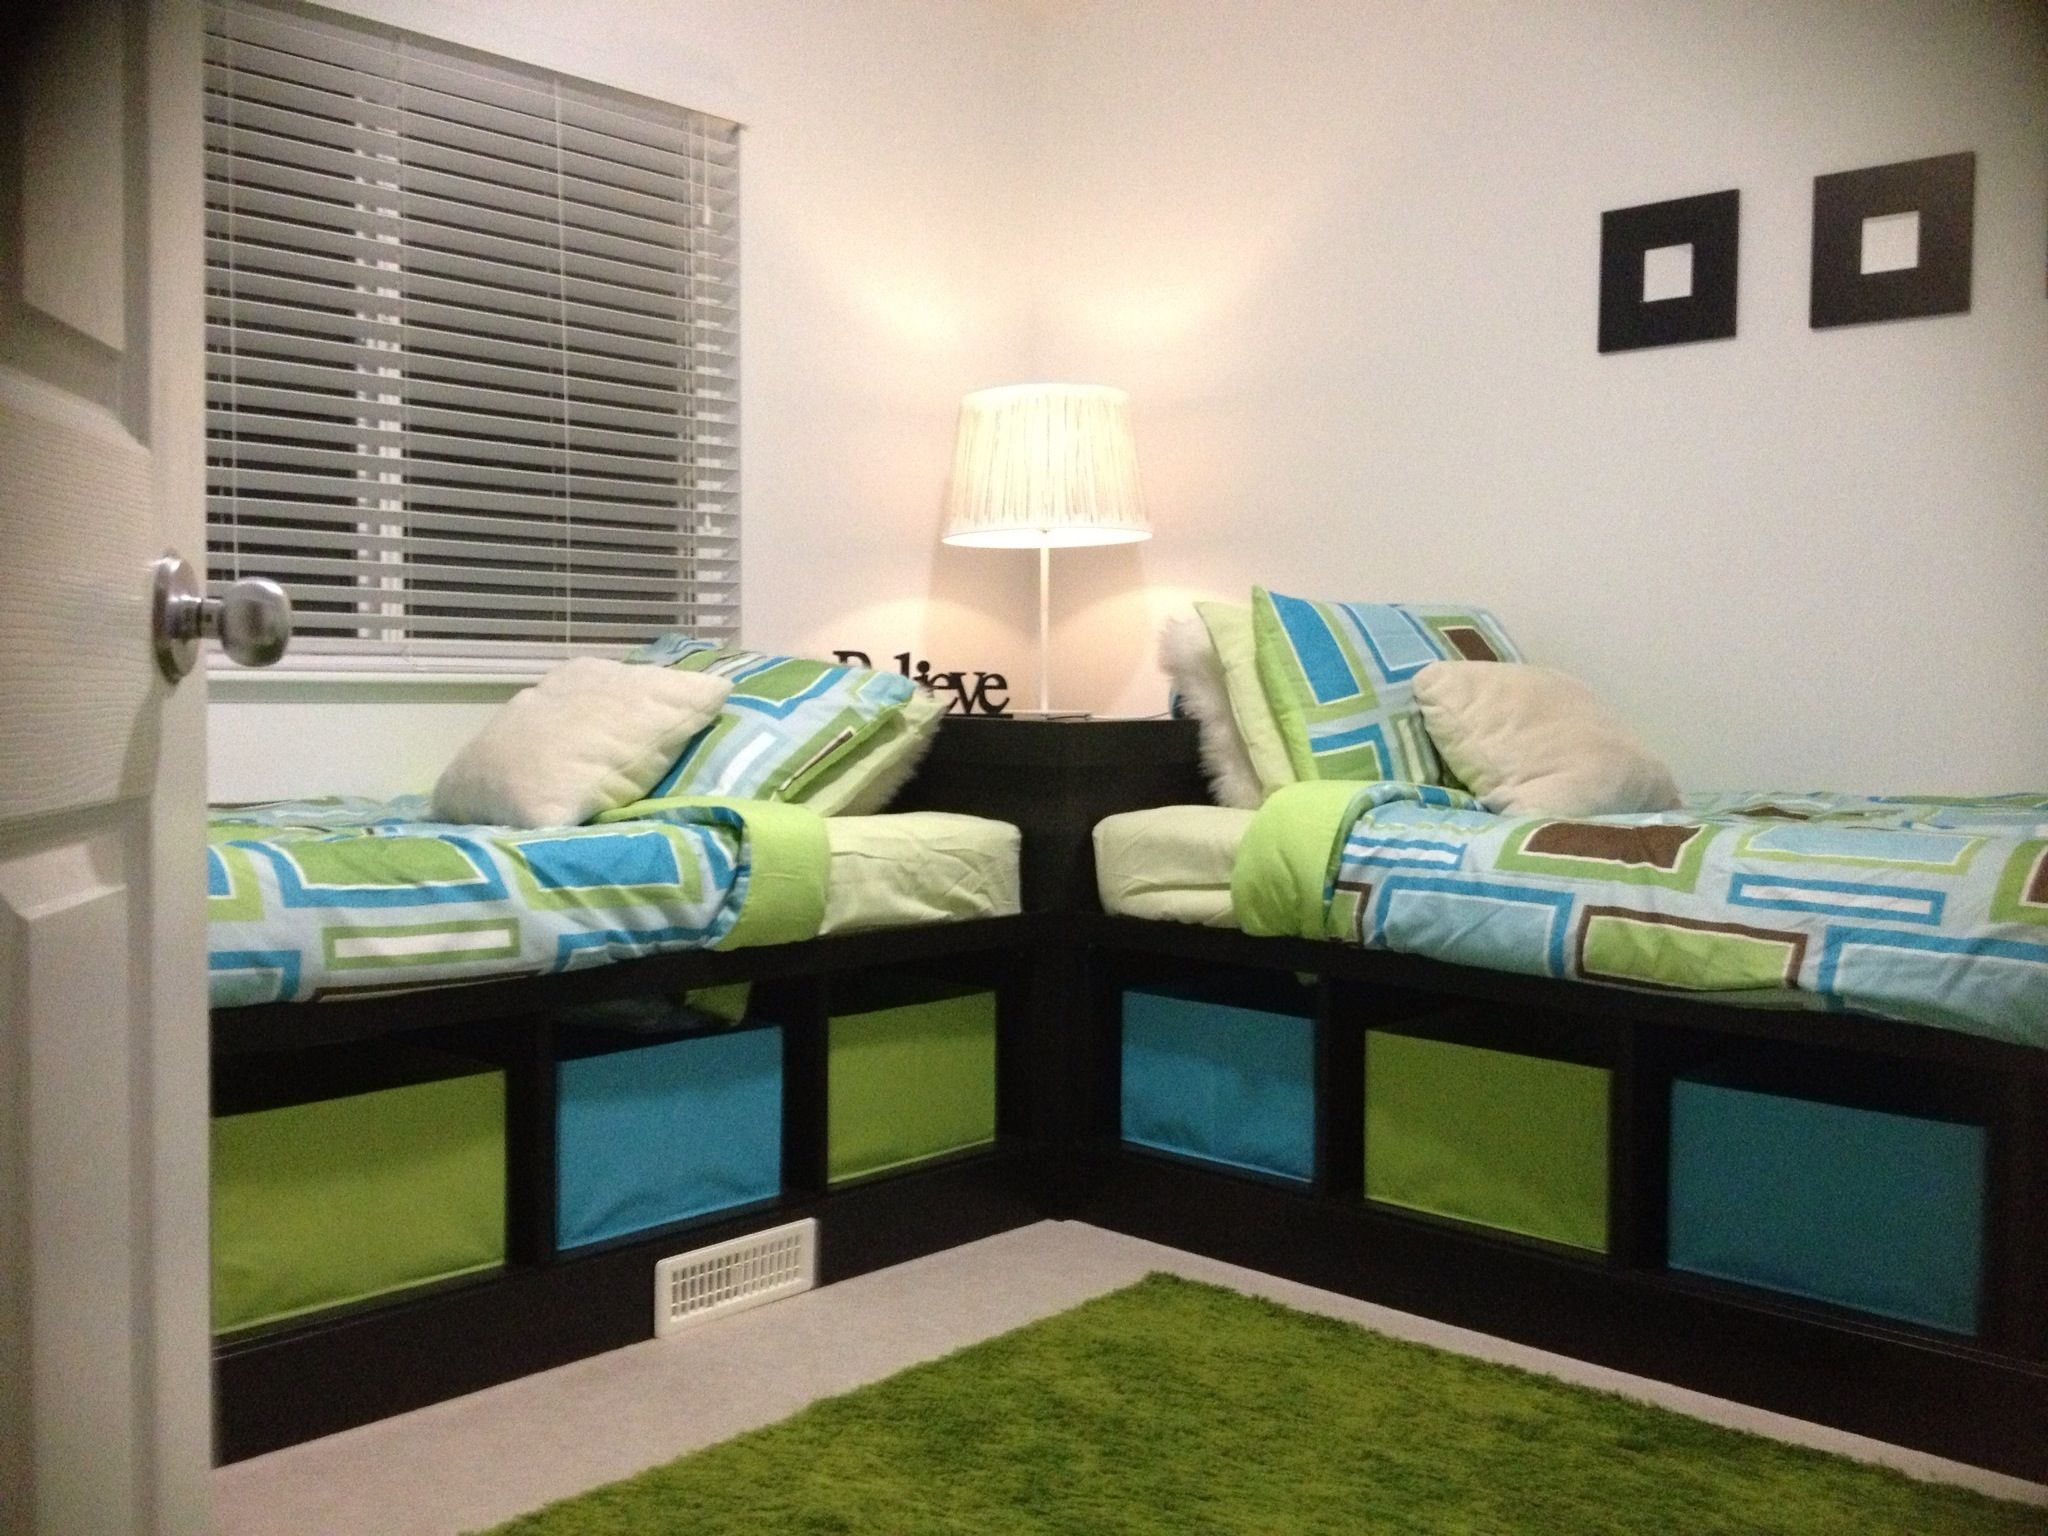 DIY Corner Twin Beds With Storage